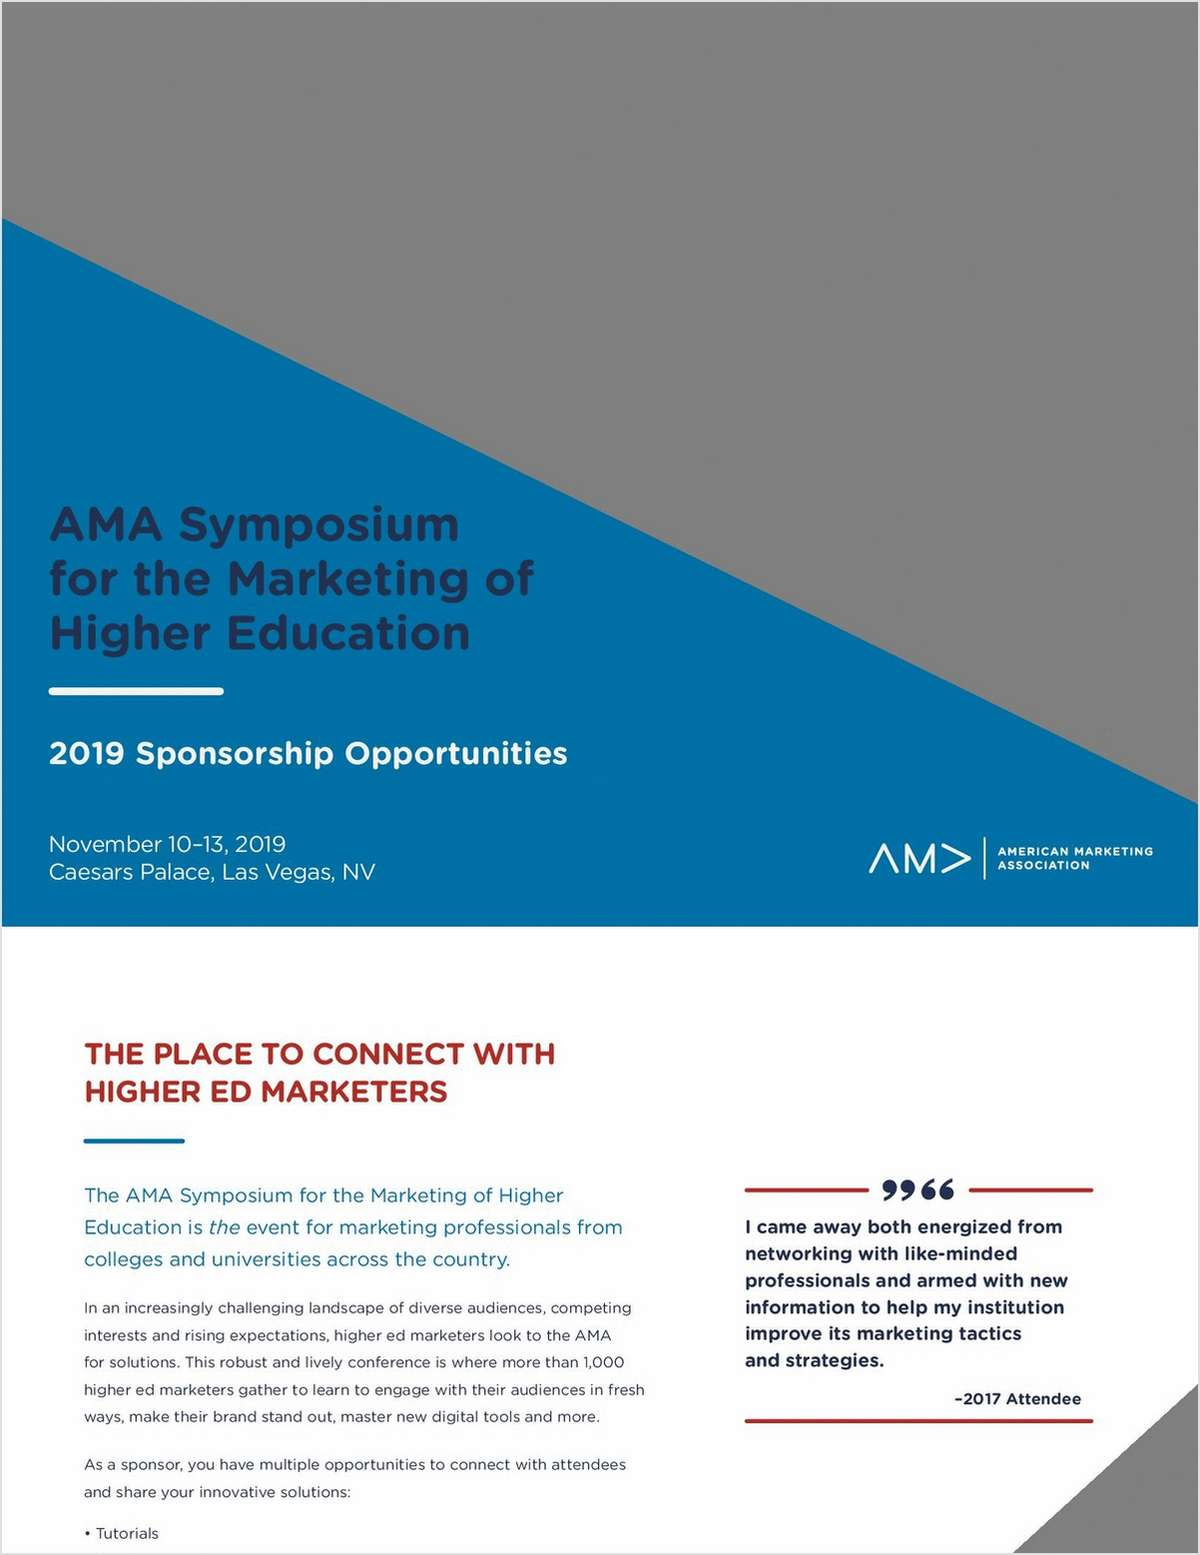 2019 Symposium for the Marketing of Higher Education Prospectus